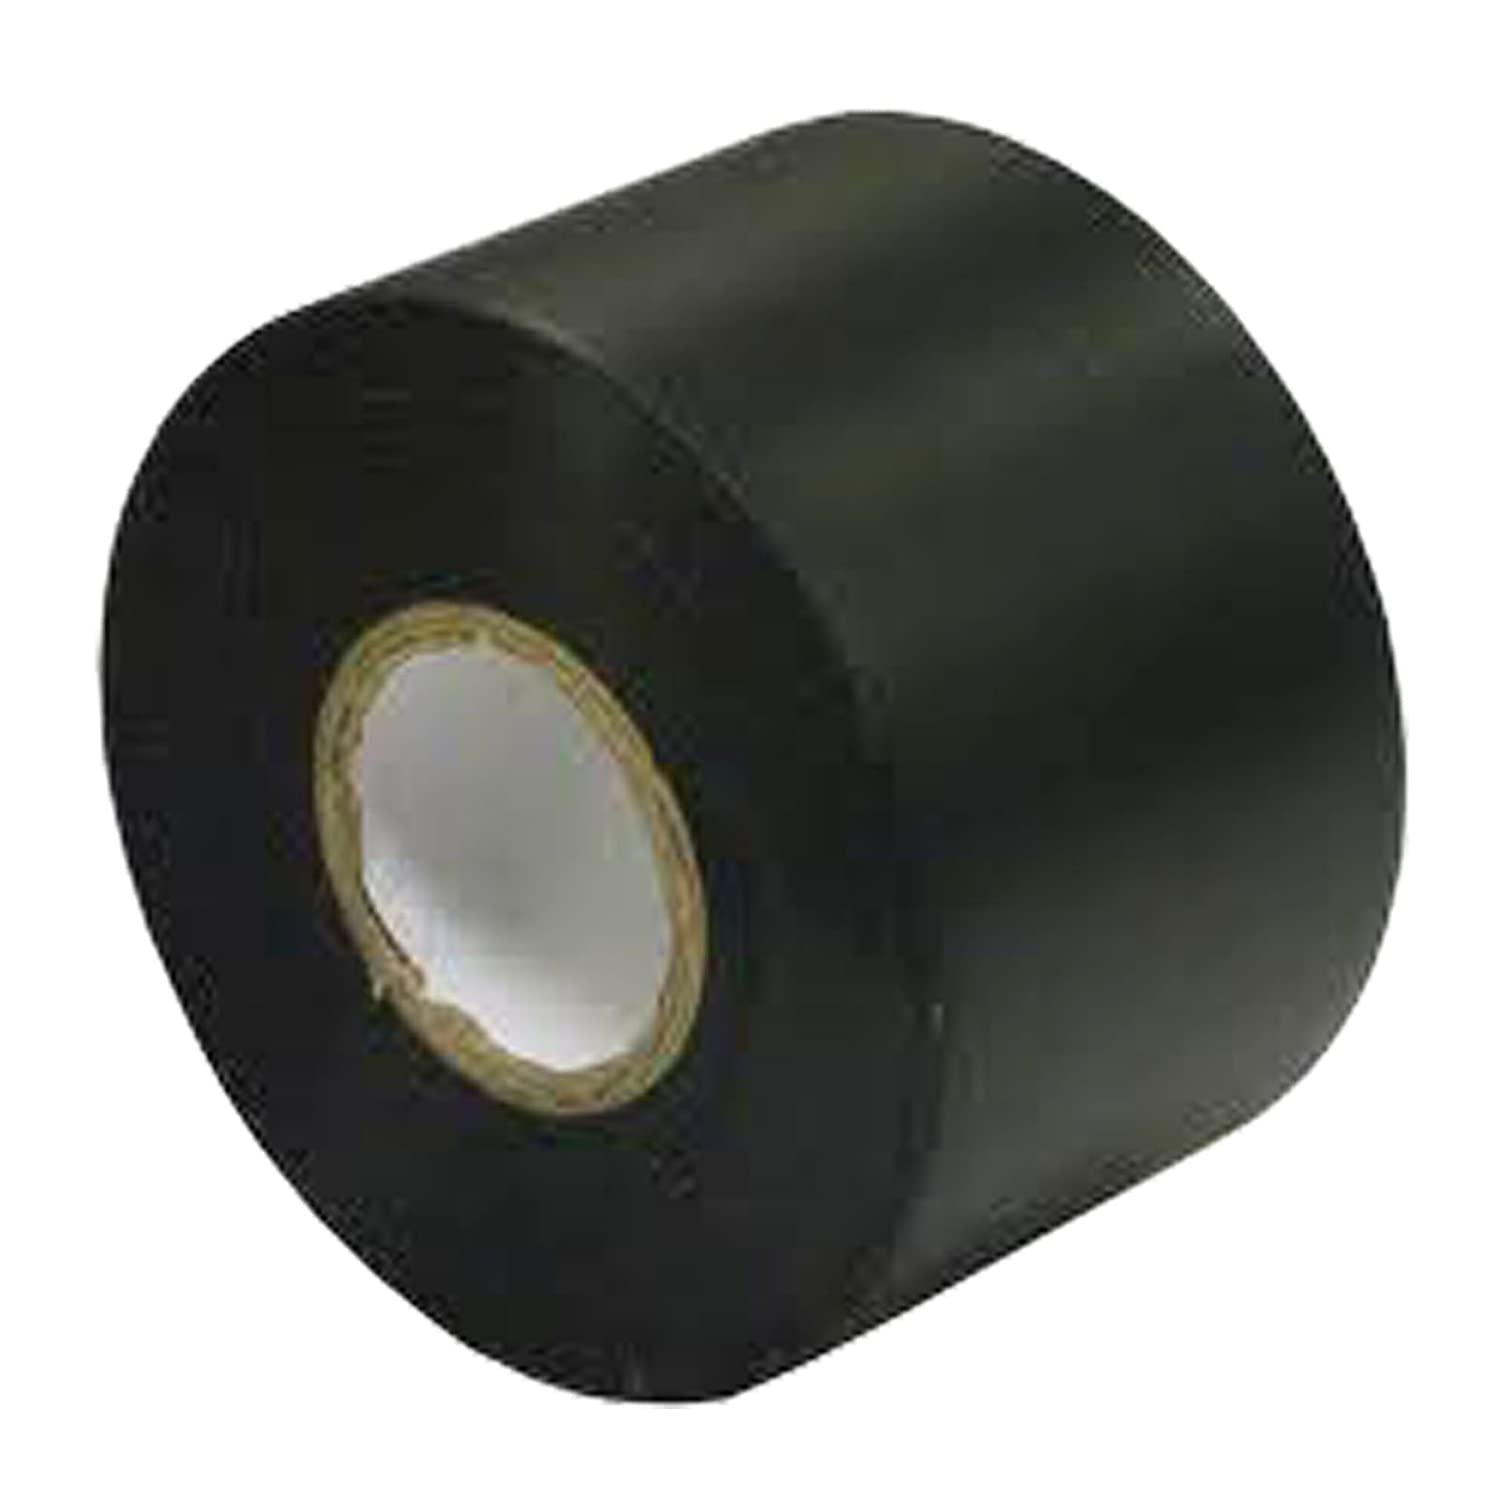 1 x BLACK ELECTRICAL PVC INSULATION TAPE 50mm x 33m EXTRA LONG EXTRA WIDE All Trade Direct